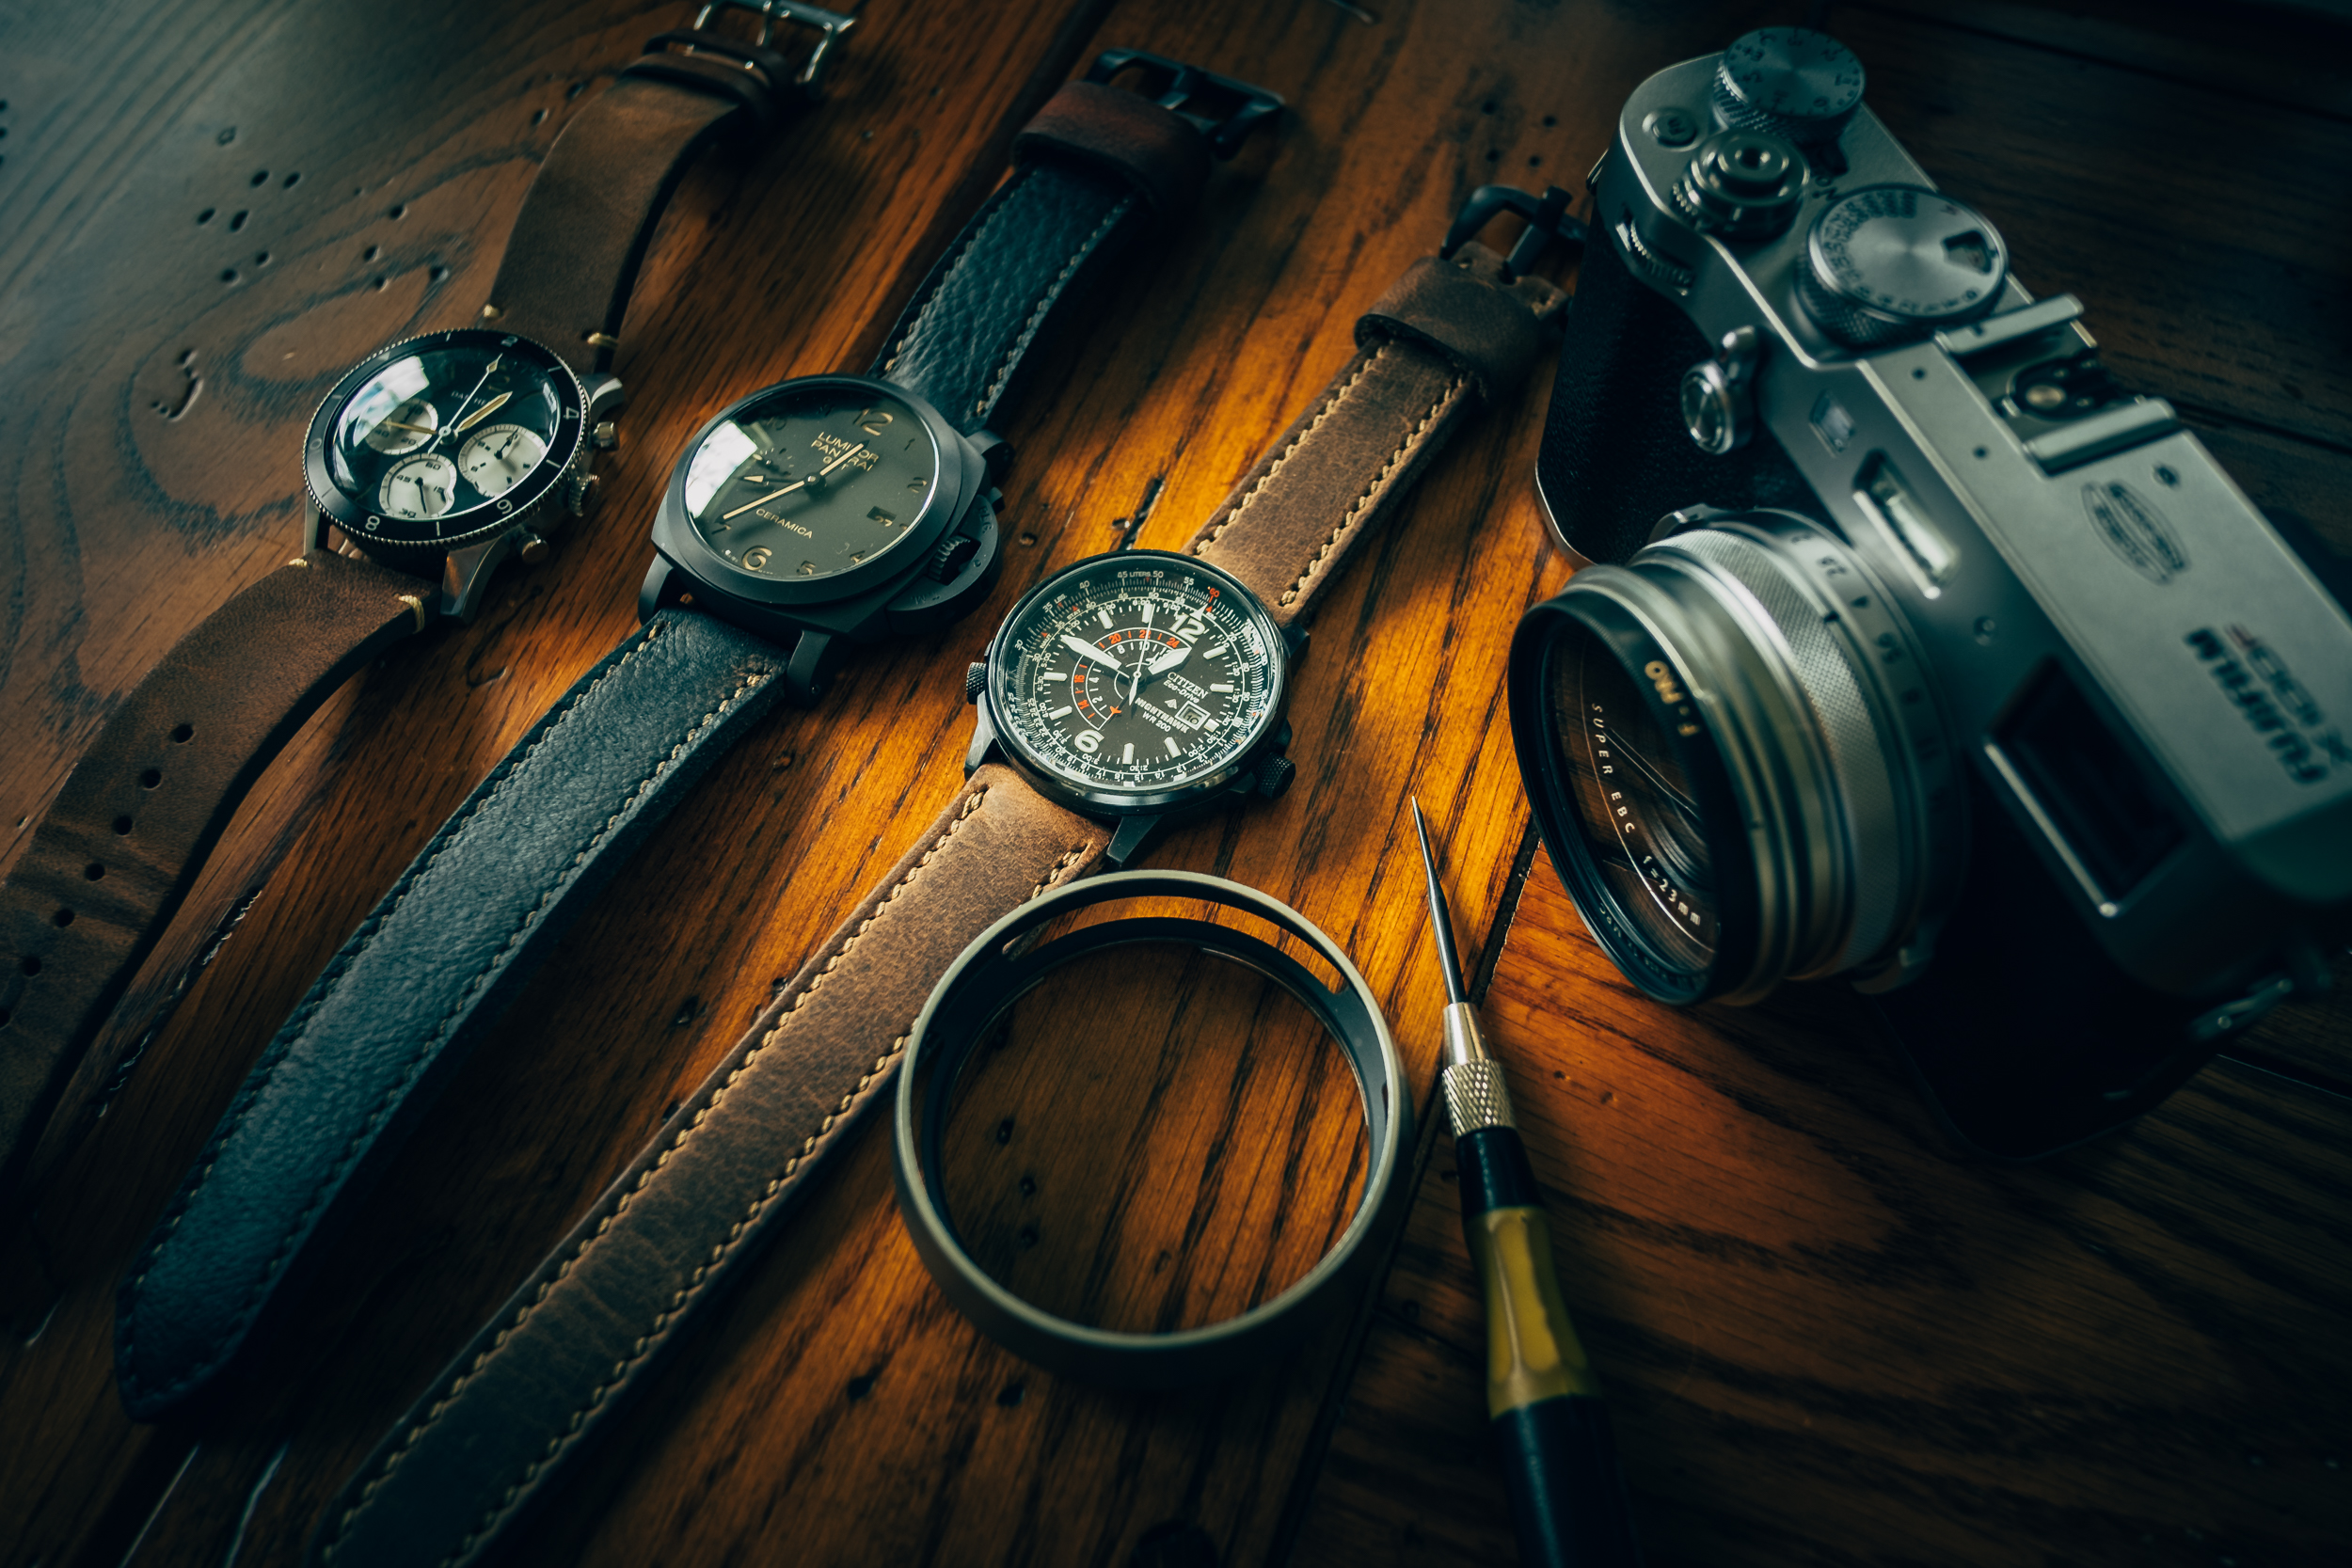 The X100F looking well suited in the company of nice things.